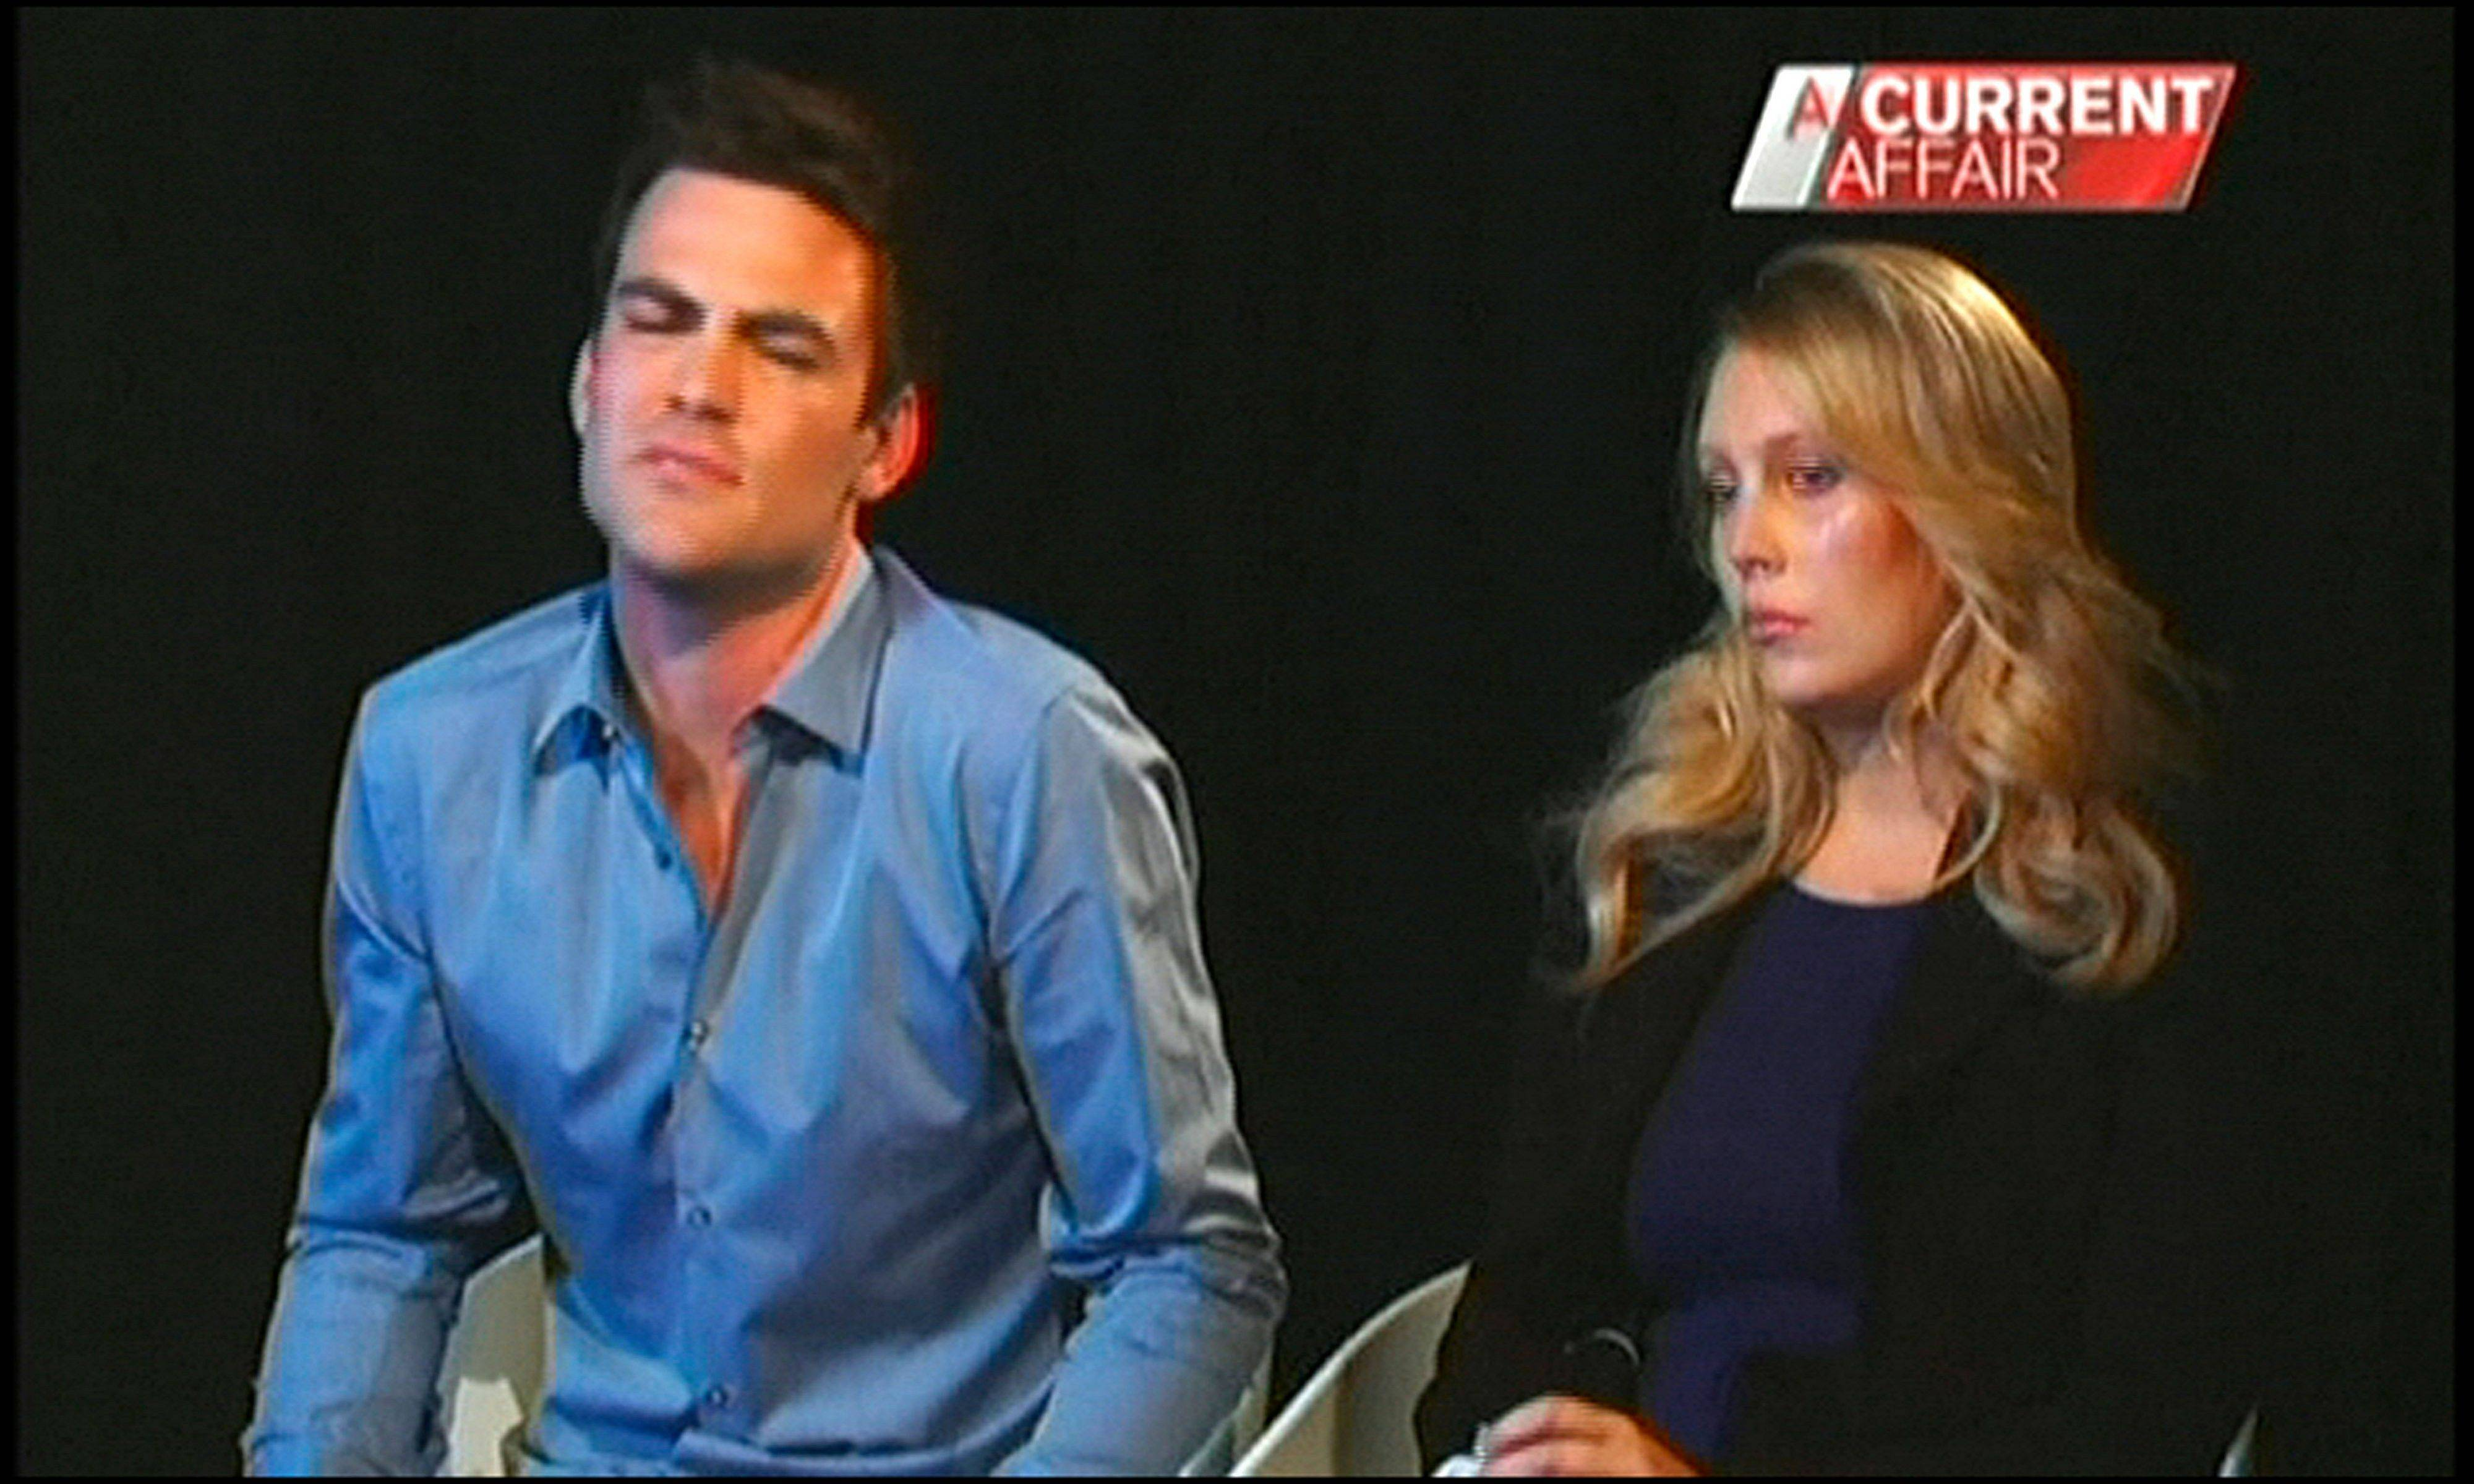 Australian radio DJs Michael Christian, left, and Mel Greig appear during an interview with Australia's Channel Nine. The two managed to impersonate Queen Elizabeth II and Prince Charles and received confidential information about the Duchess of Cambridge's medical condition, which was broadcast on-air.